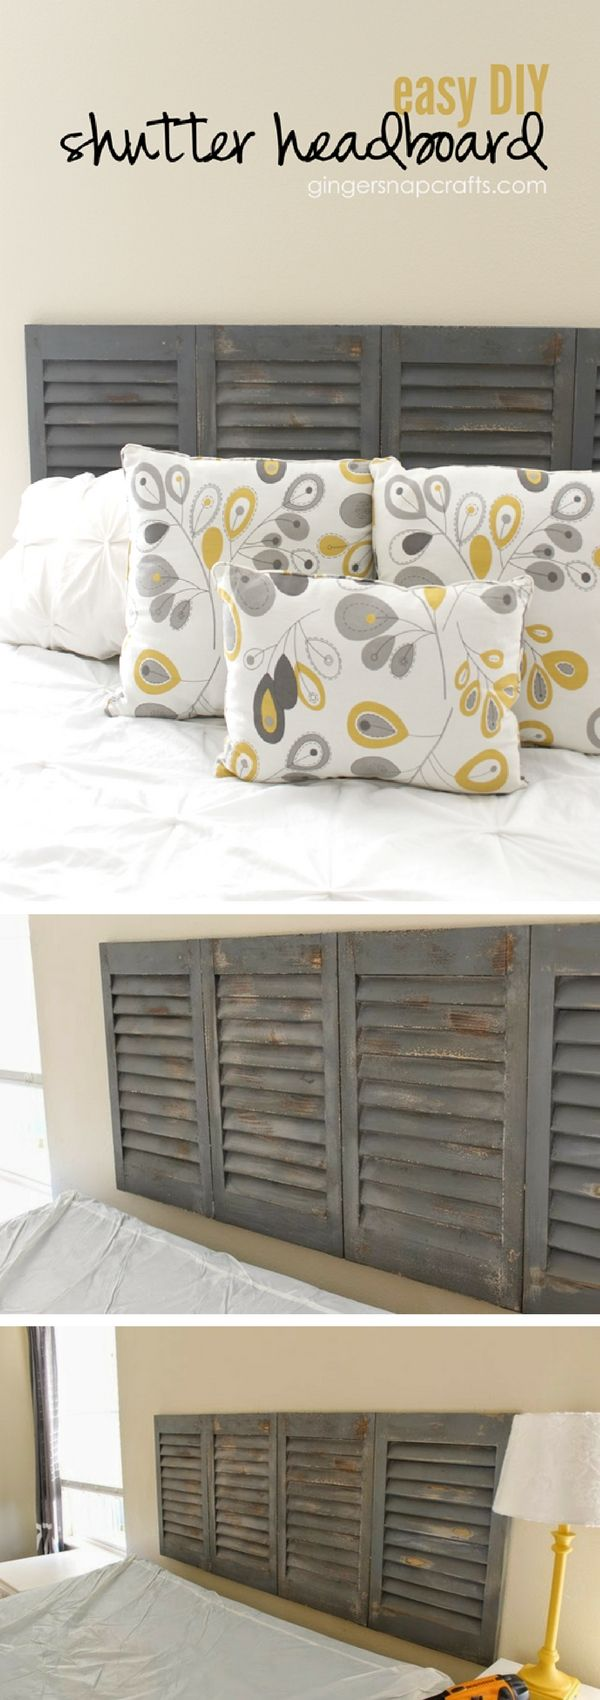 Window behind headboard ideas   most creative diy projects for old shutters in your home decor